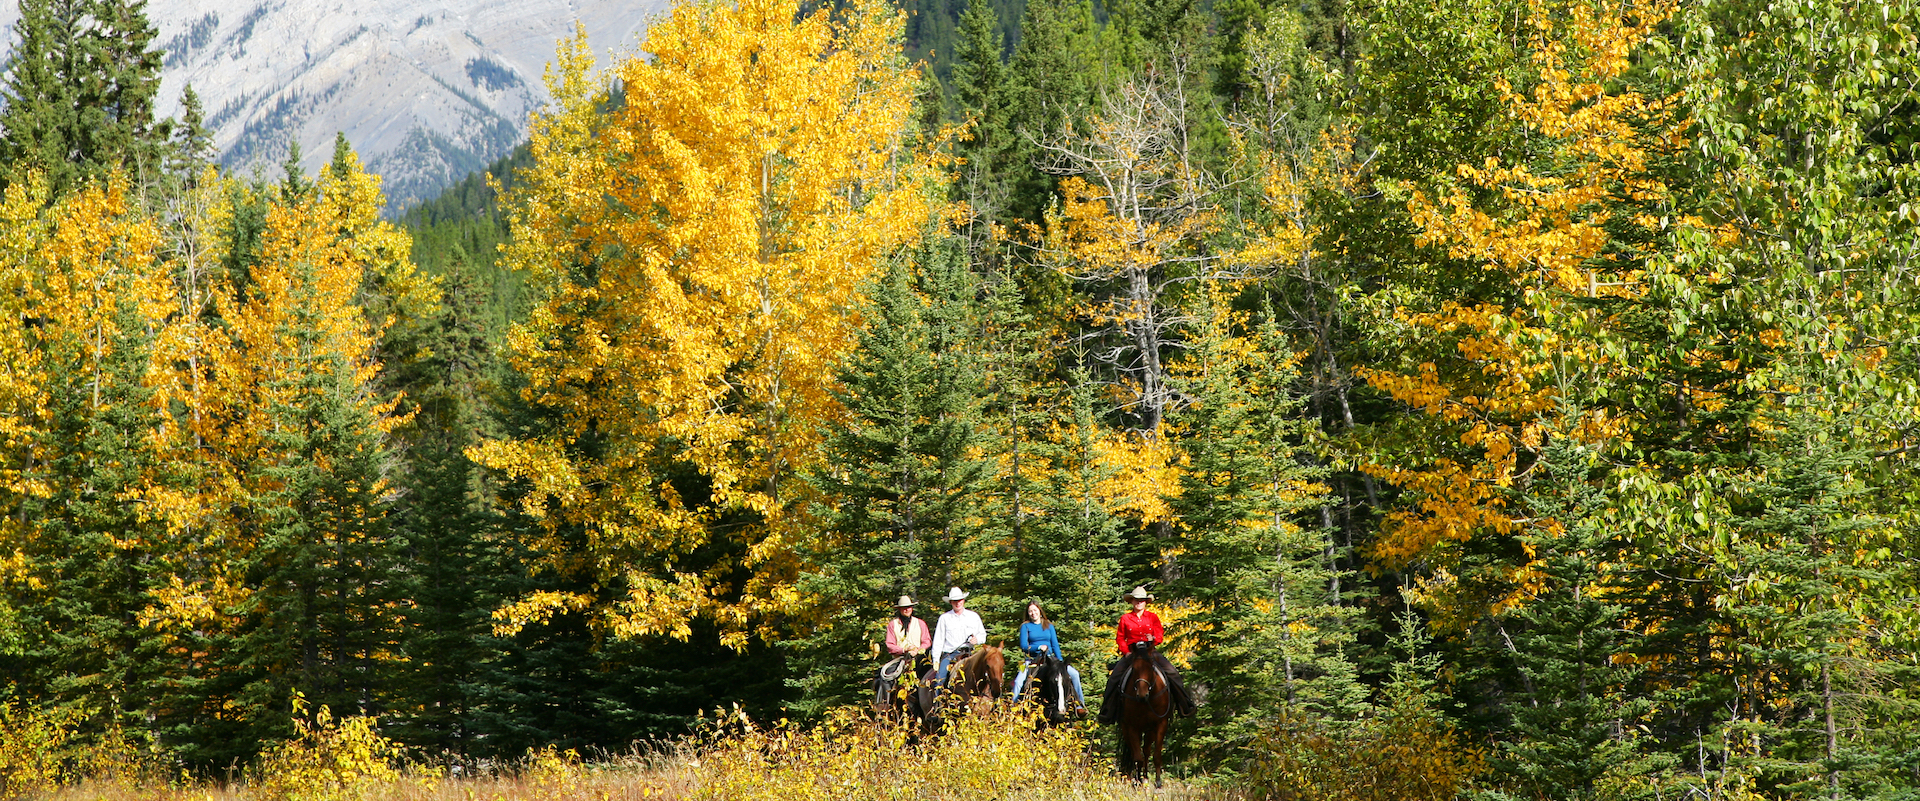 Horseback Ride Fall Banff Trail Riders